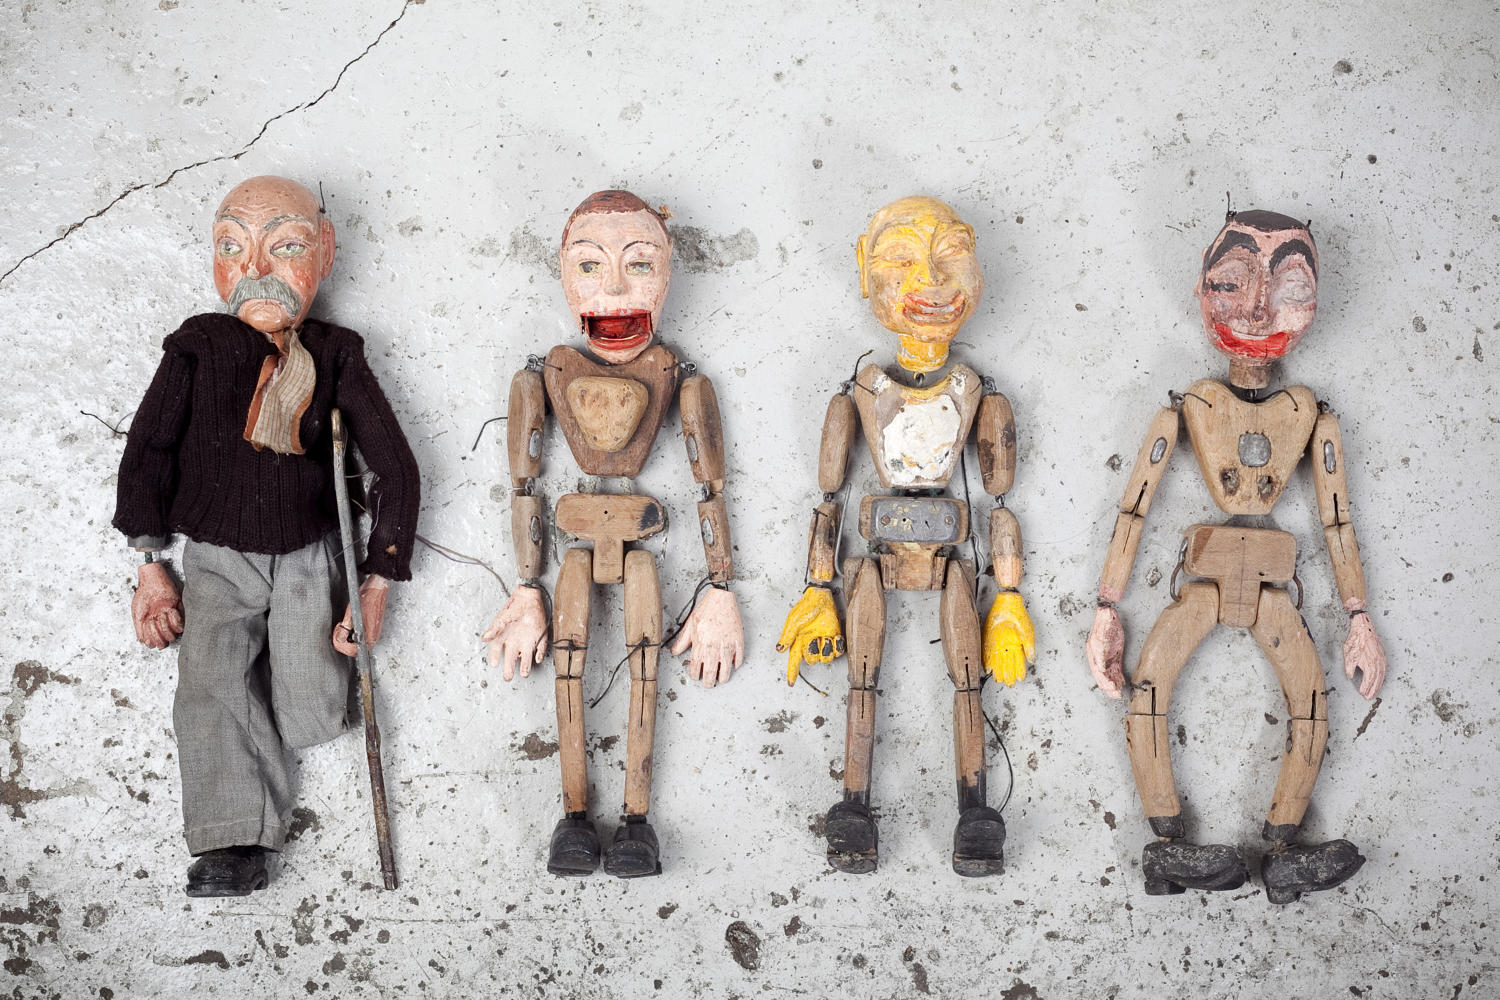 A set of four articulated puppets